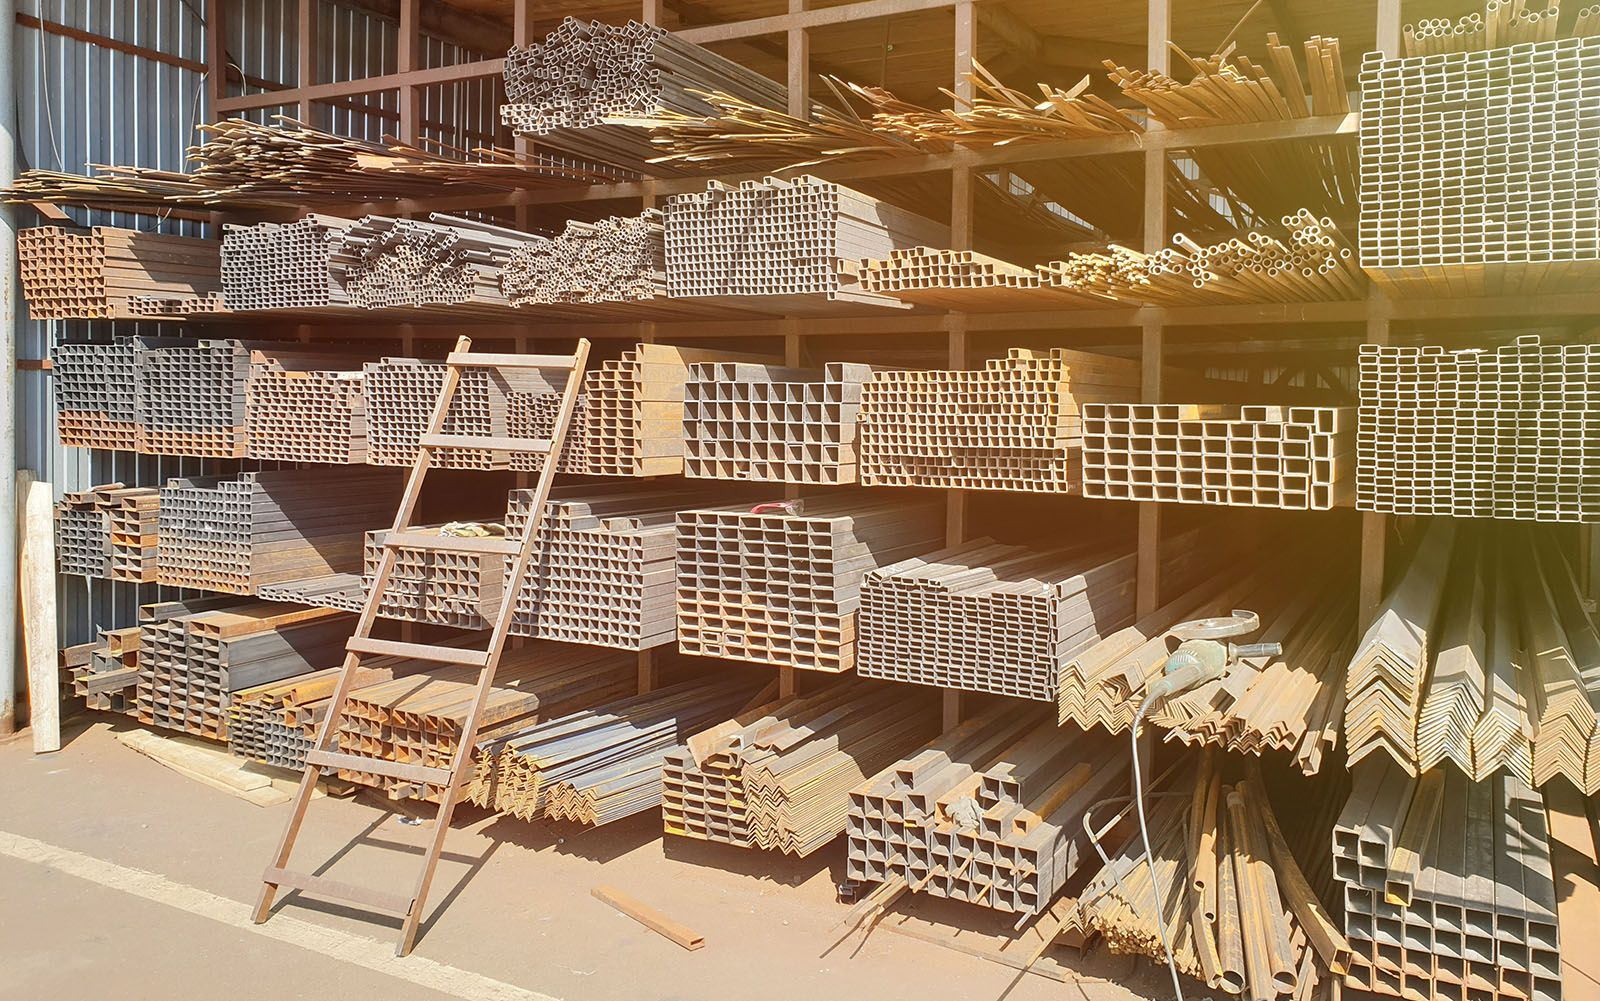 How Builders Look For An Edge: Surviving Supply Chain Limbo